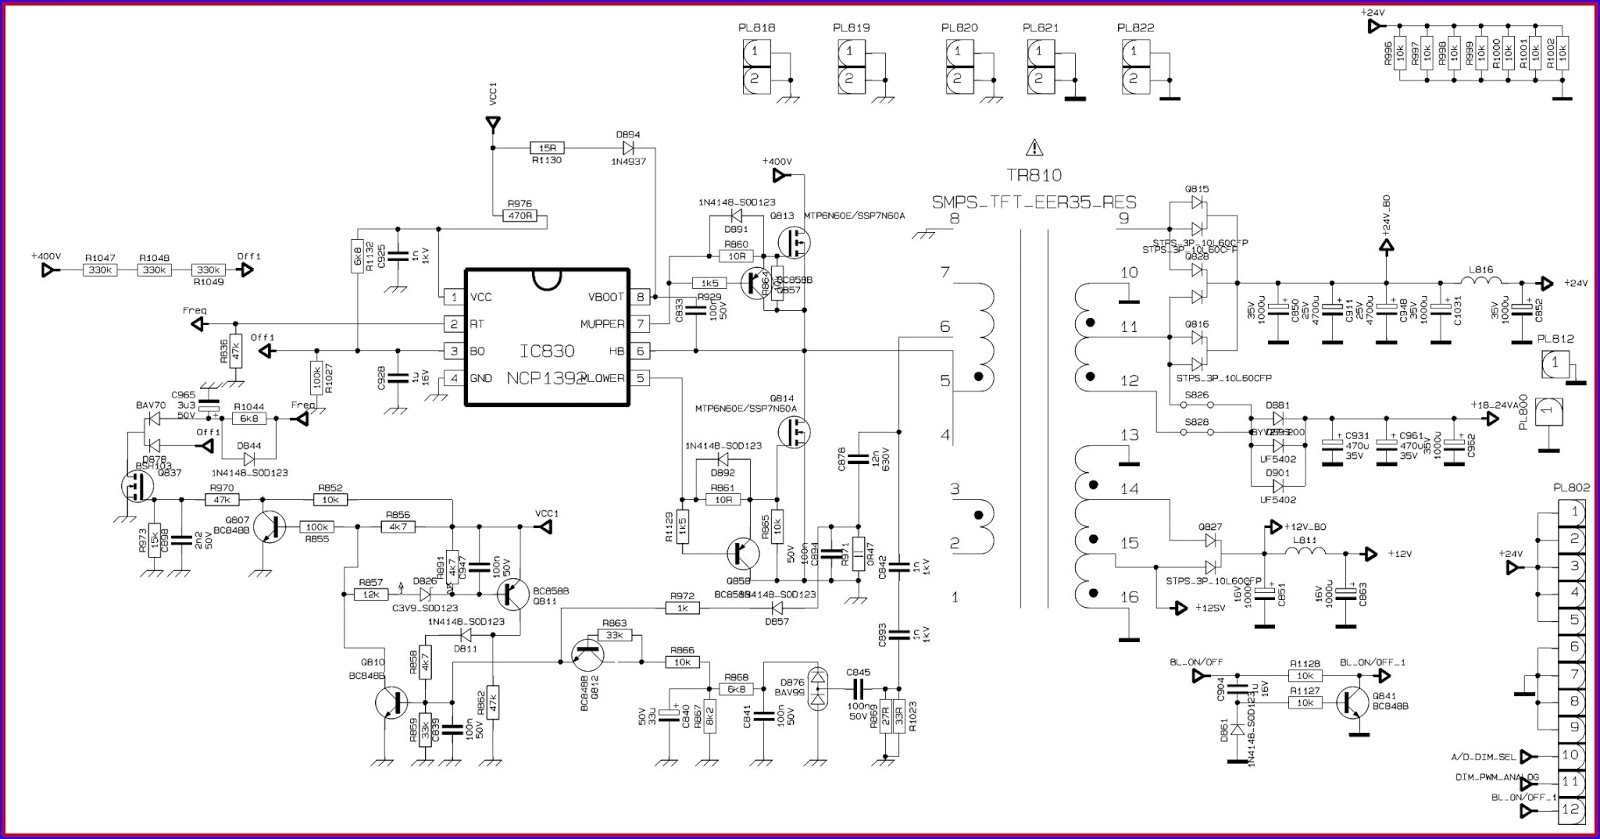 Sharp Lc-40sh340 Service Mode Troubleshooting Power Supply Circuit Diagram